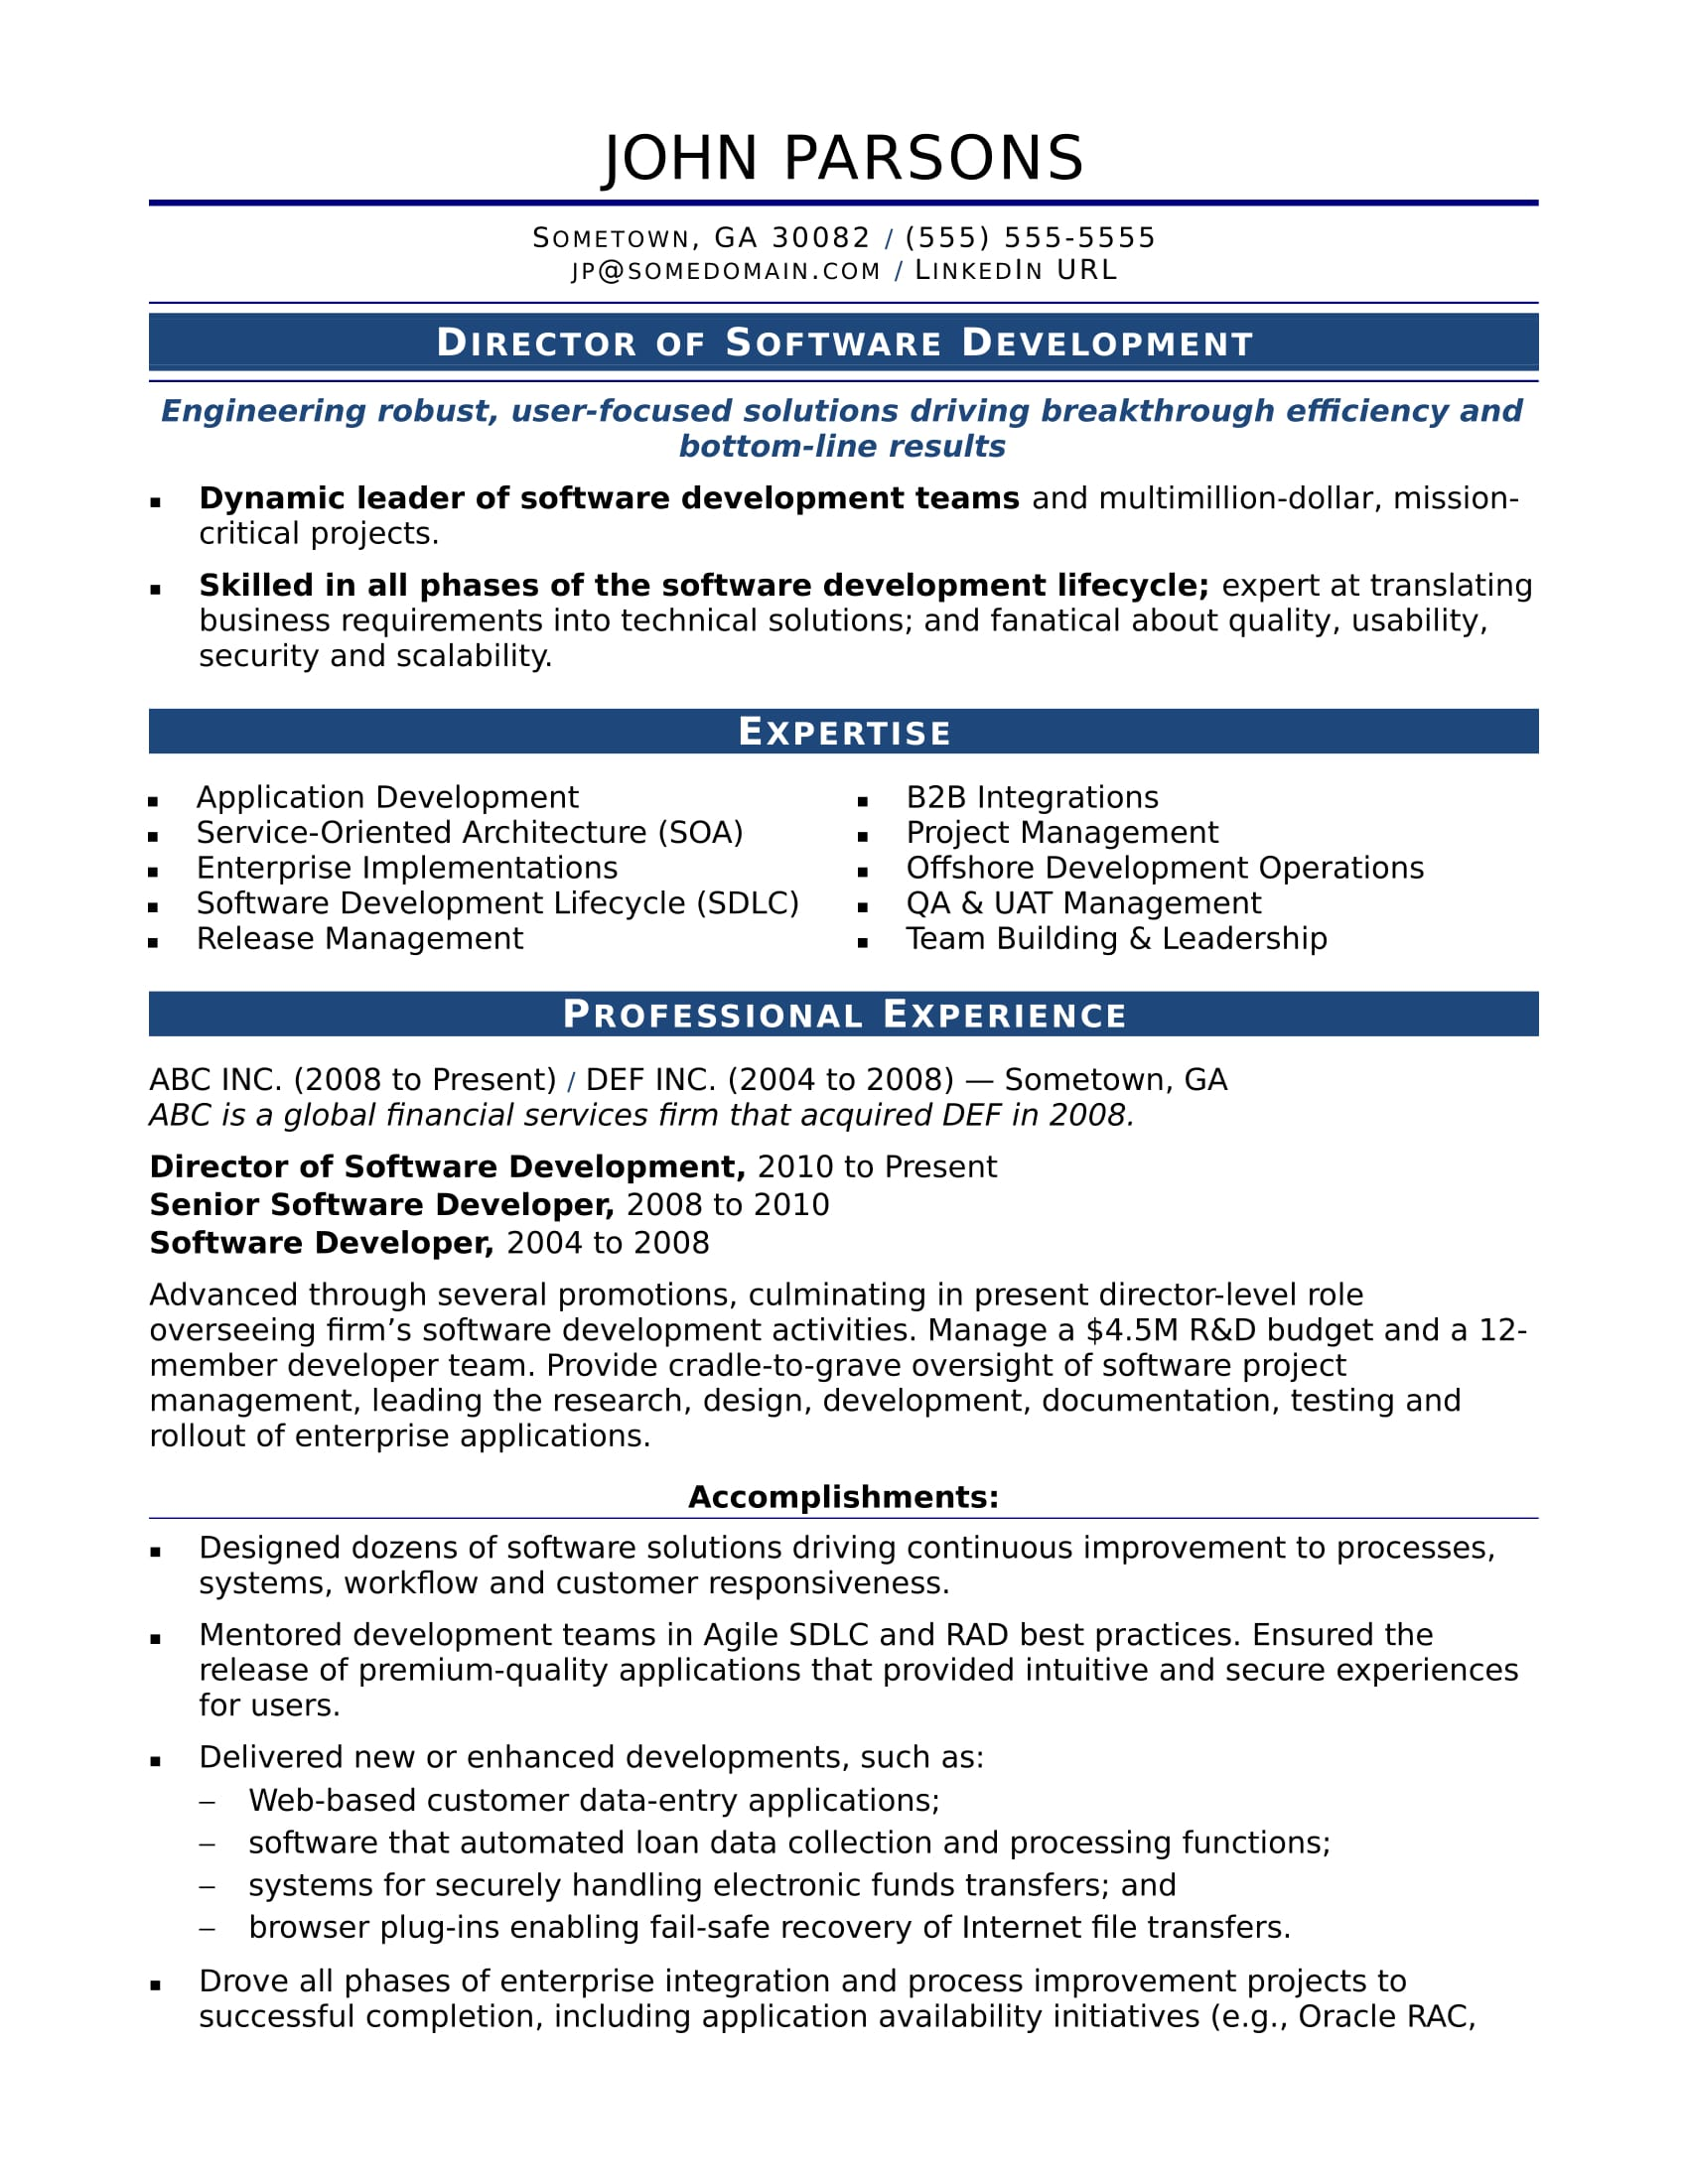 Sample Resume For An Experienced IT Developer  Sample Software Developer Resume